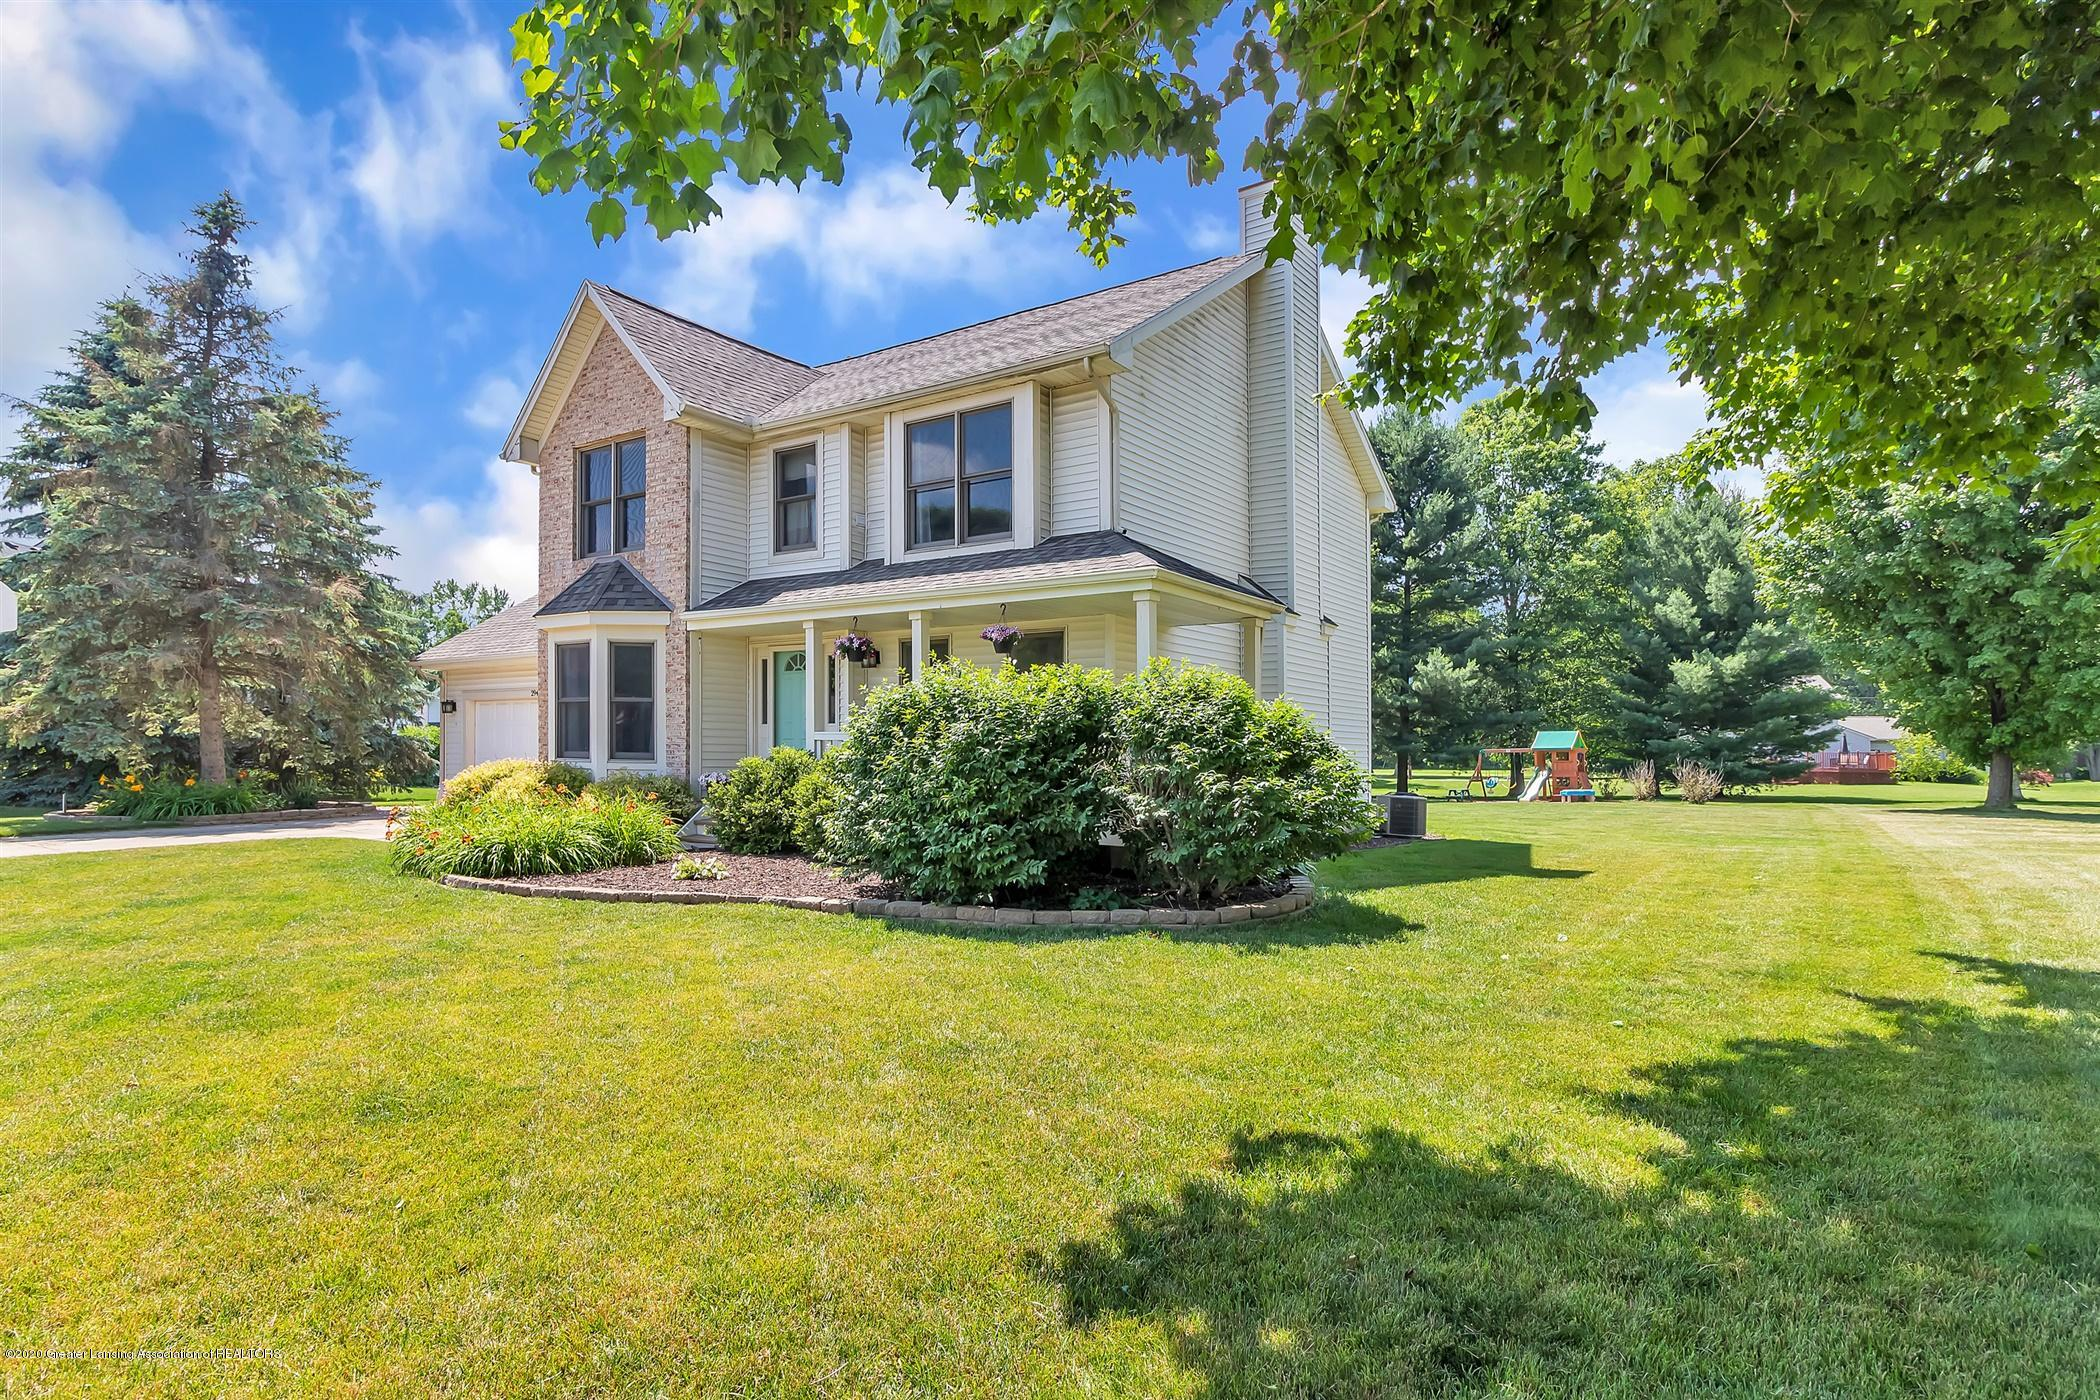 2945 Whistlewood Way - 04-2945Whistlewood-WindowStill-Real - 4